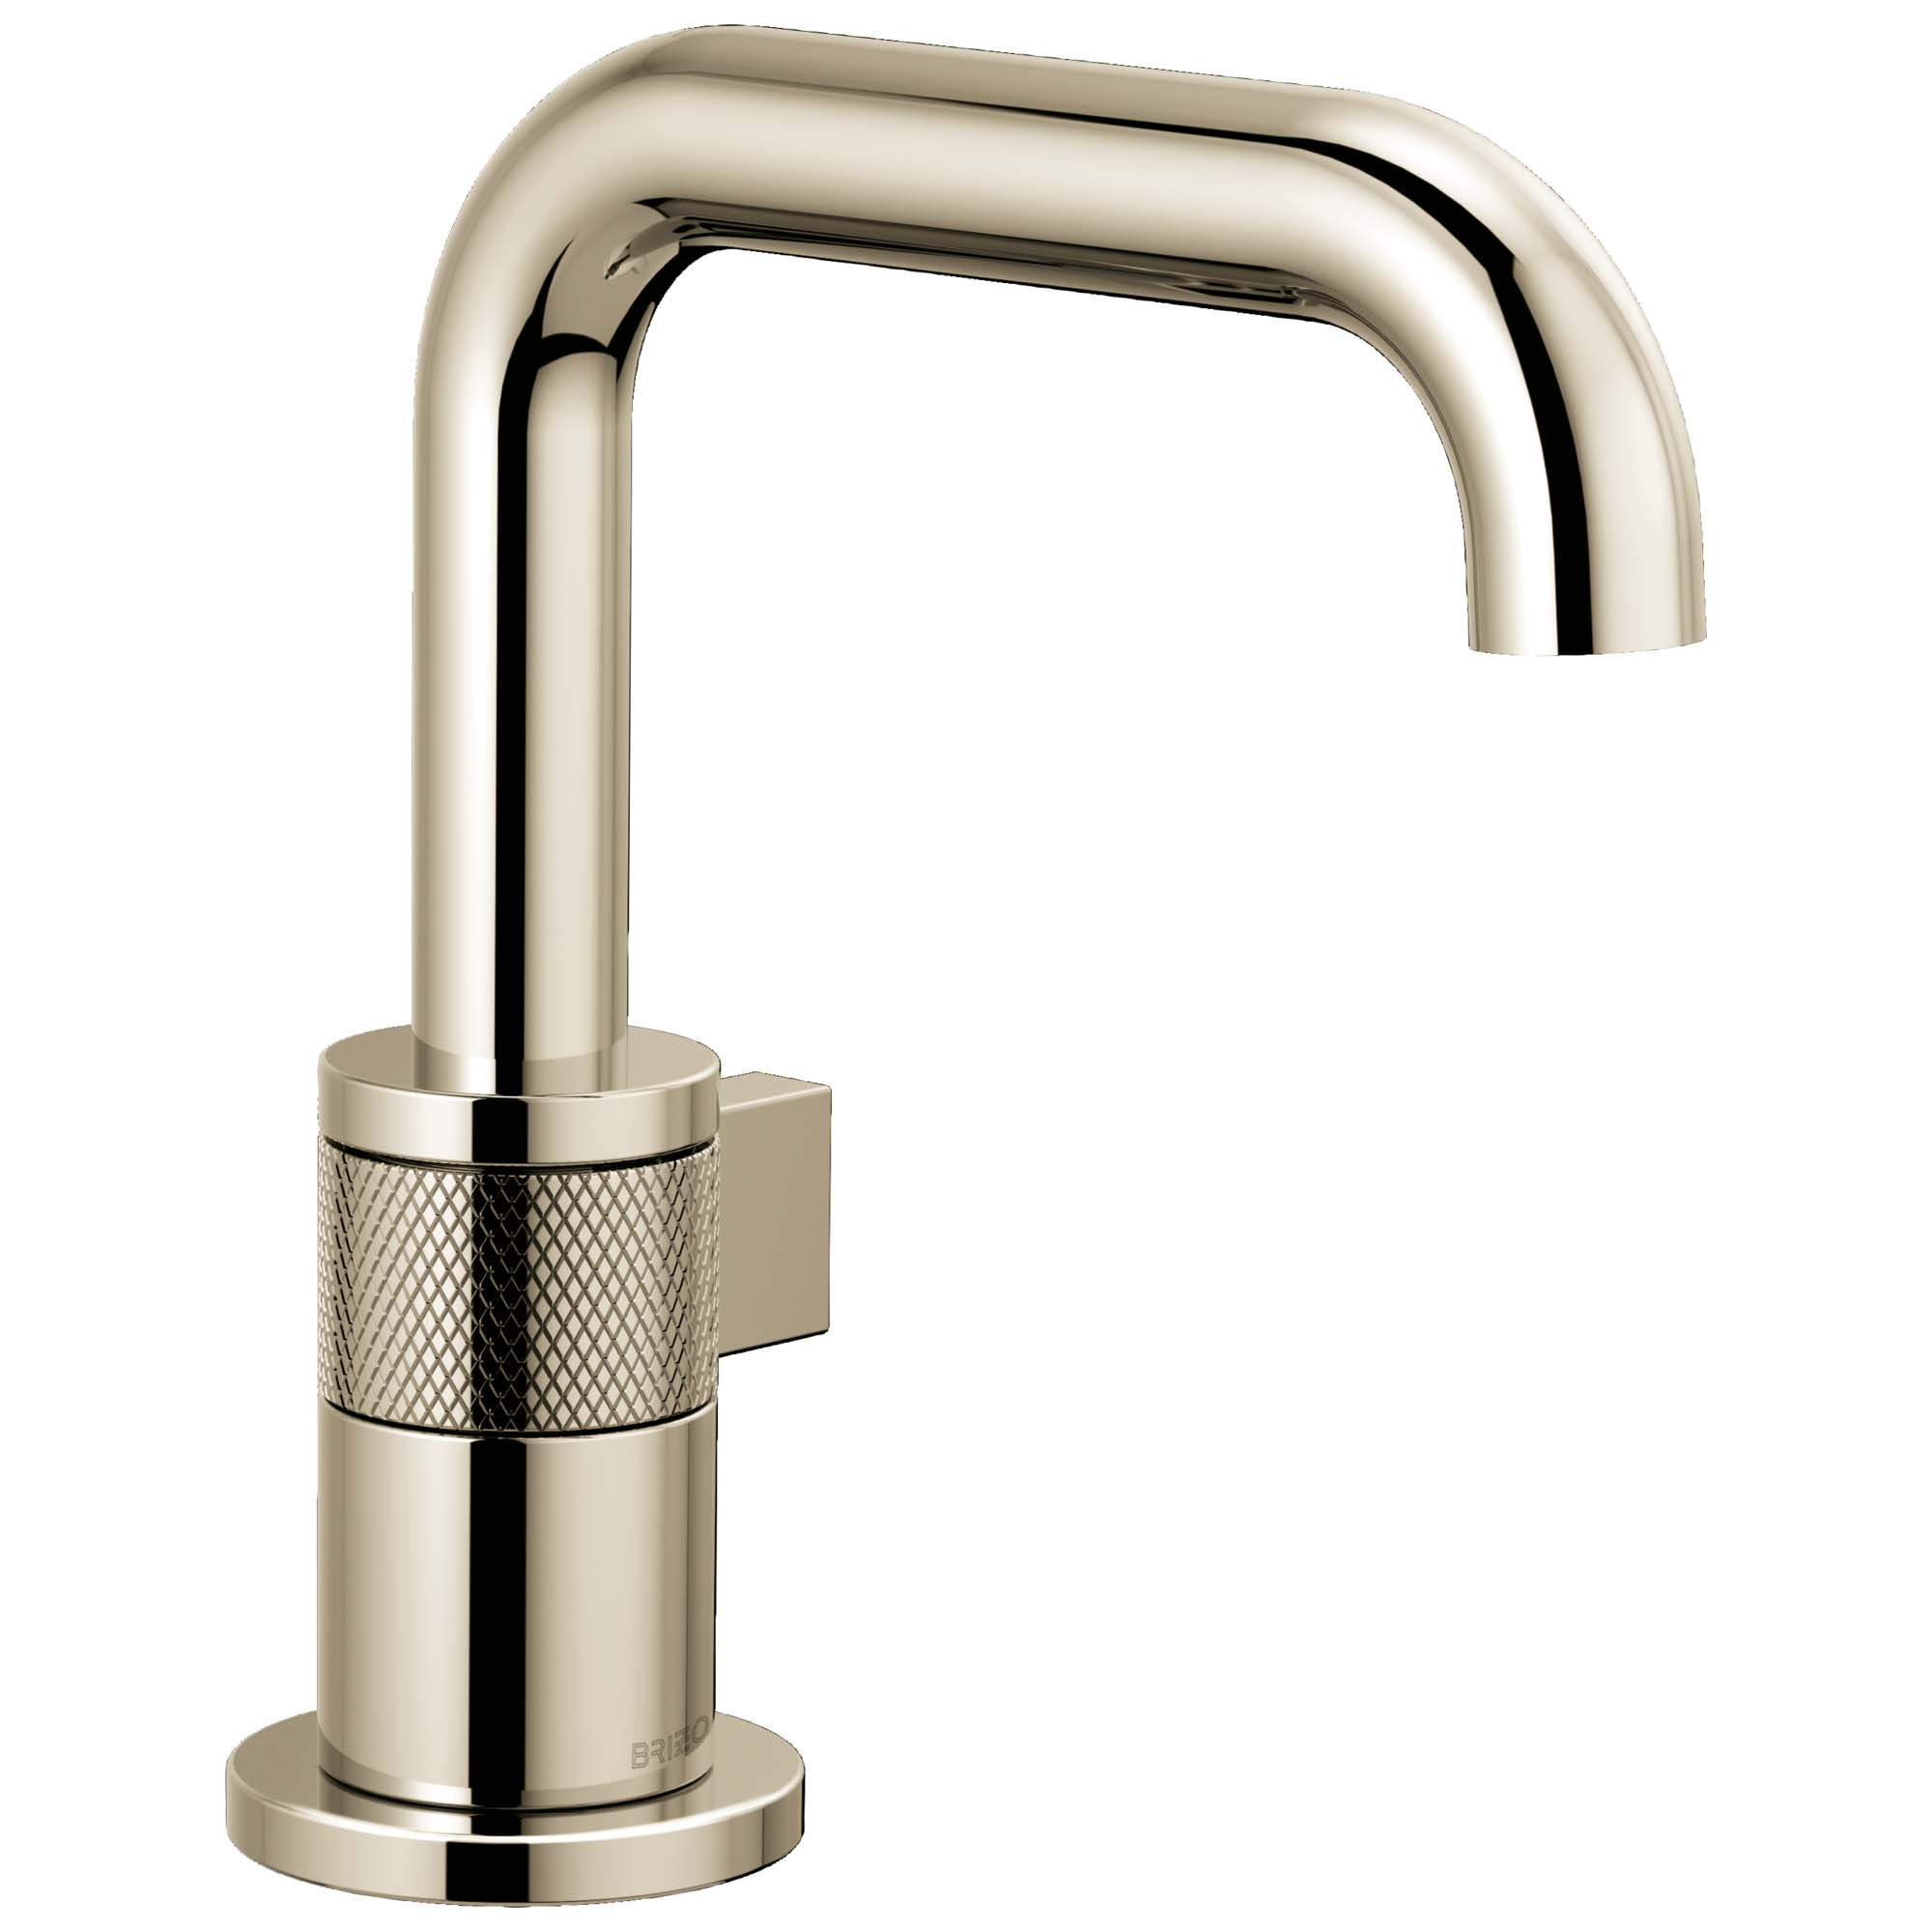 Brizo 65035LF-PN Litze Single Handle Lavatory - Polished Nickel